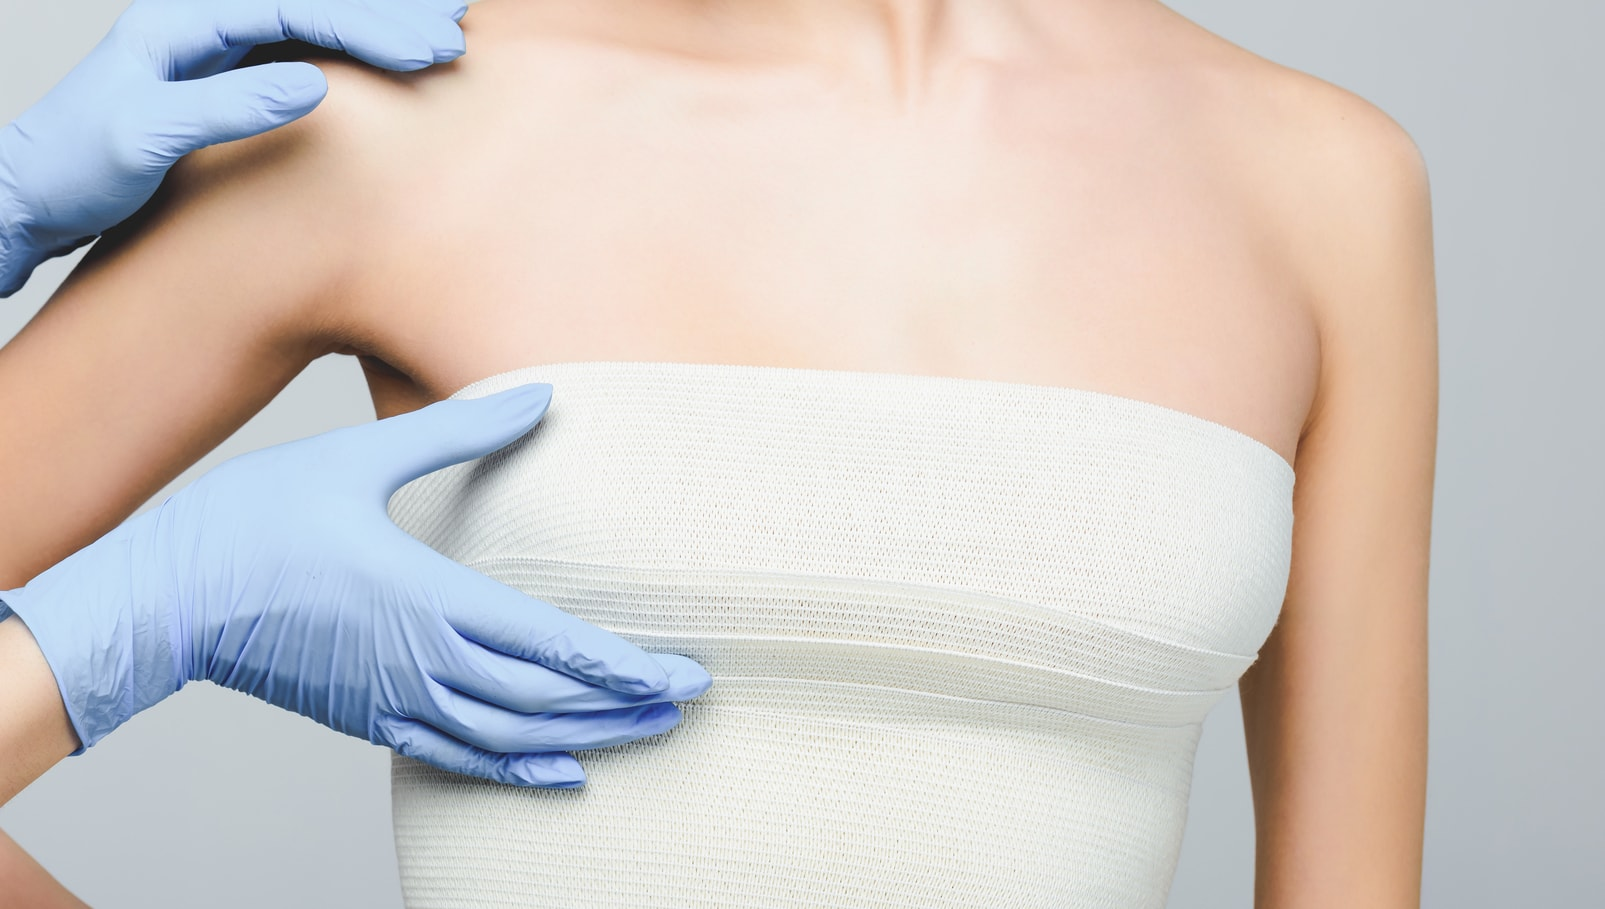 Capsulectomy for Capsular Contracture